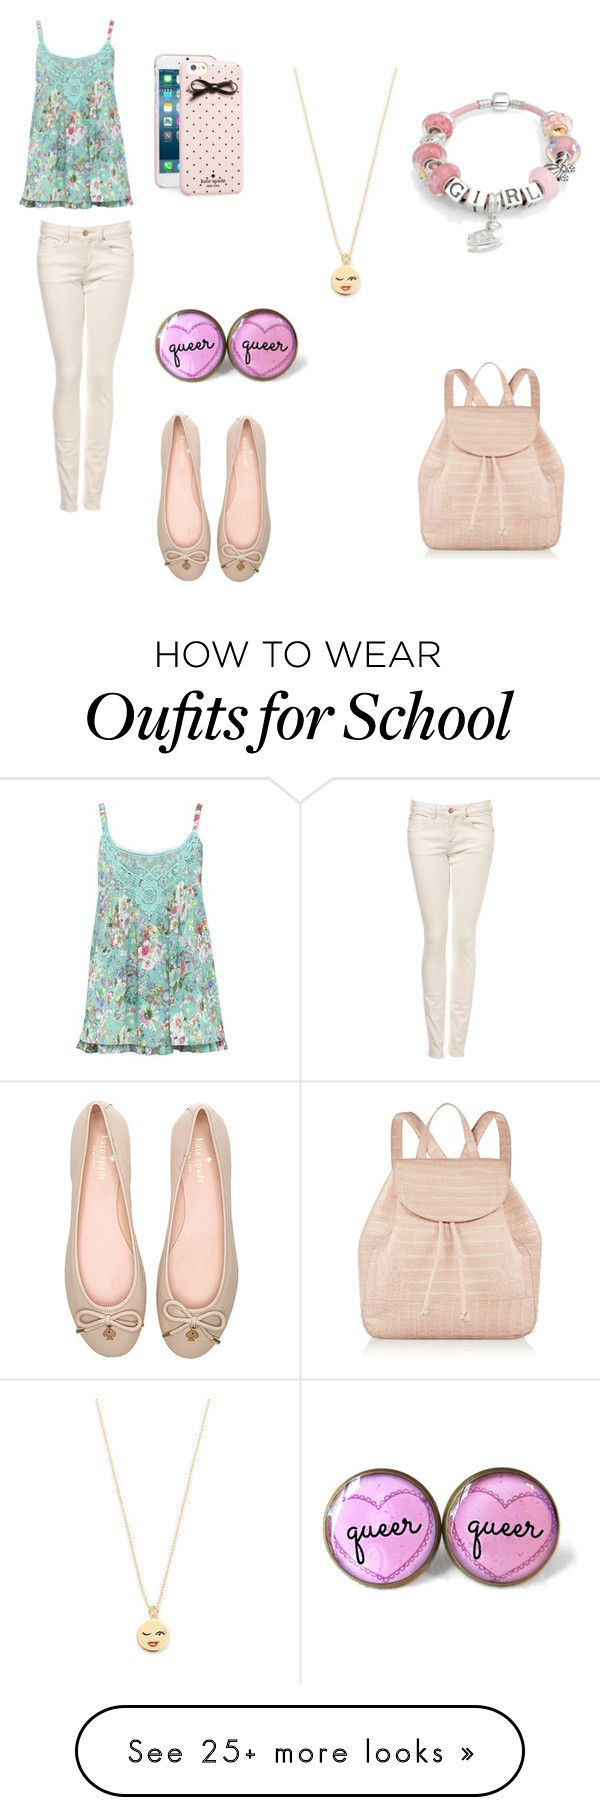 """Time for school"" by bibijag on Polyvore featuring M&Co, Kate Spade, Nancy Gonzalez and Bling Jewelry"